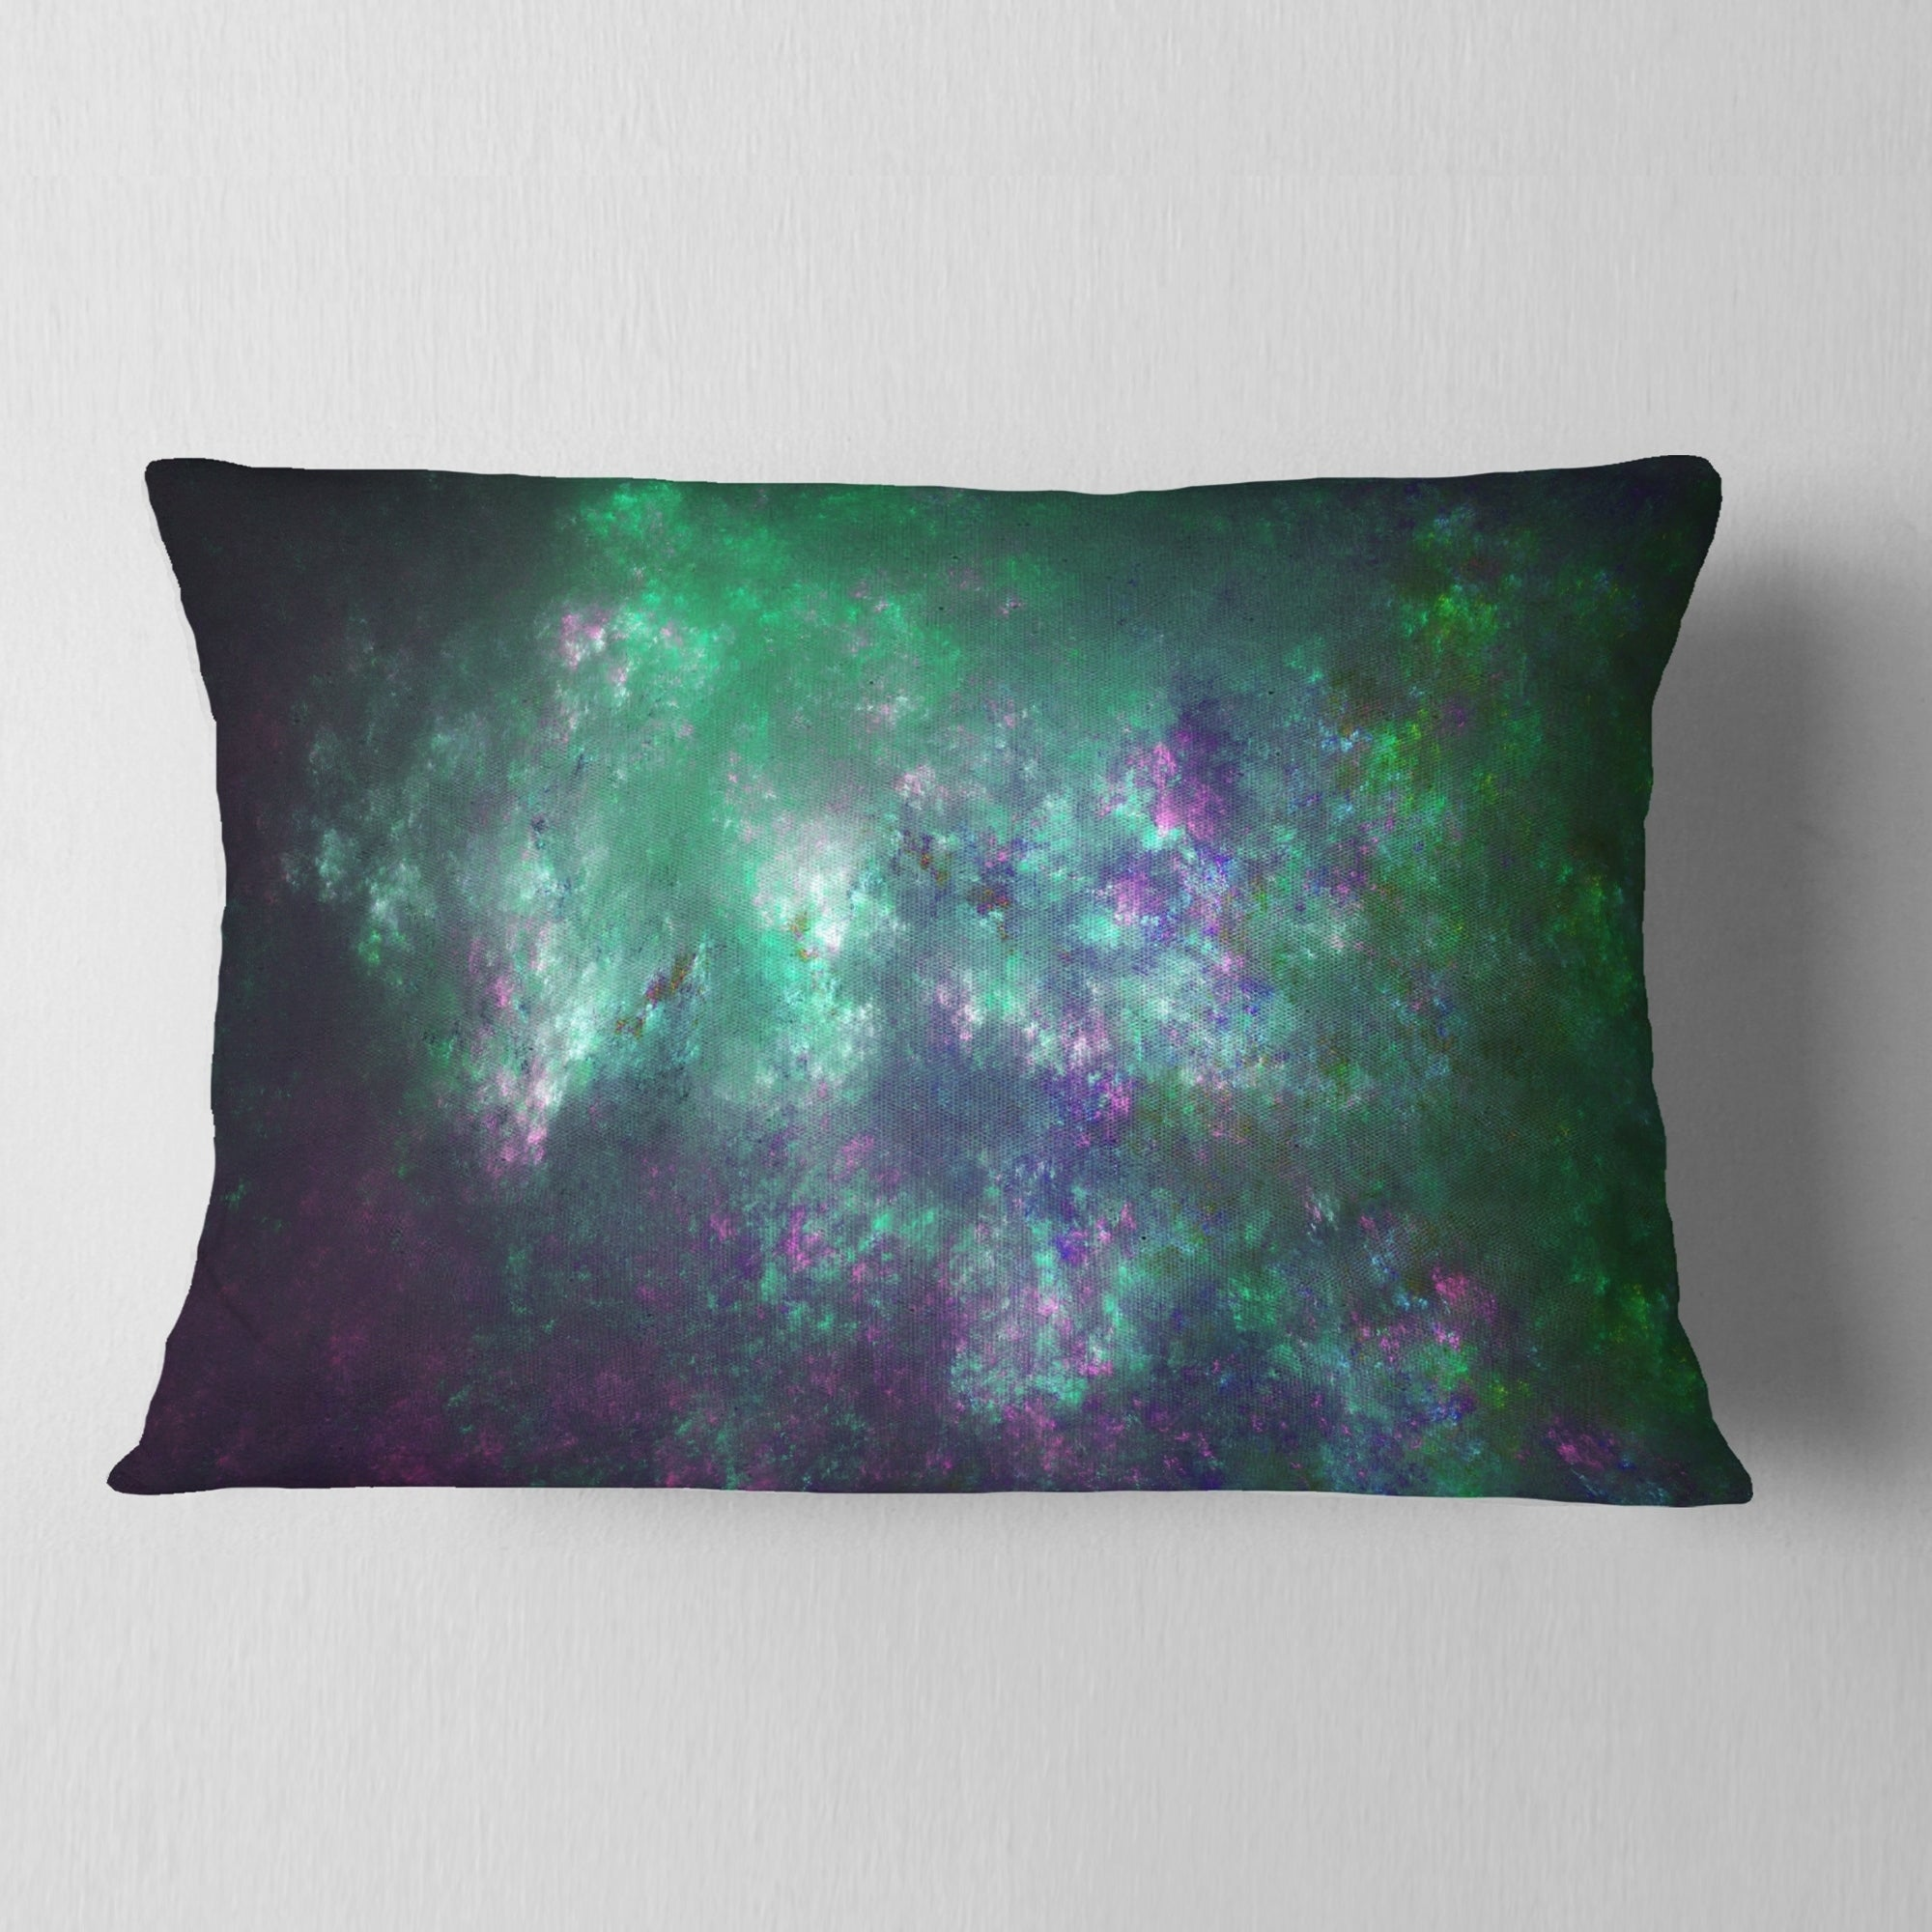 X 18 In Insert Printed On Both Side In Sofa Throw Pillow 18 In Designart Cu16368 18 18 Green Starry Fractal Sky Abstract Cushion Cover For Living Room Throw Pillow Covers Decorative Pillows Inserts